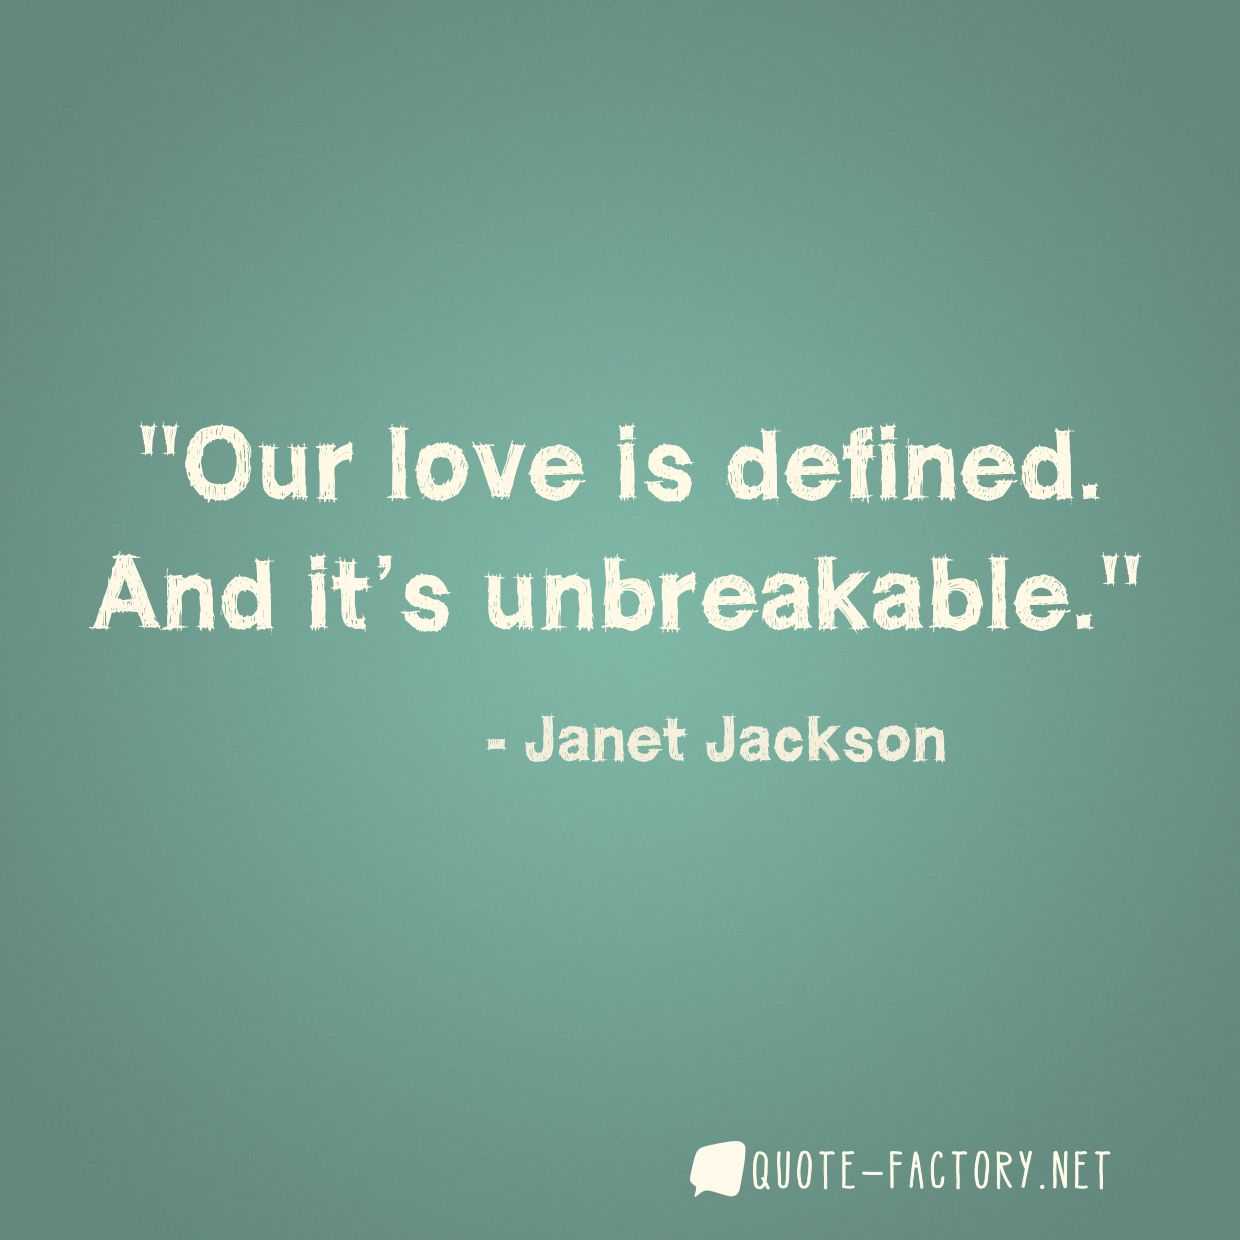 Our love is defined. And it's unbreakable.